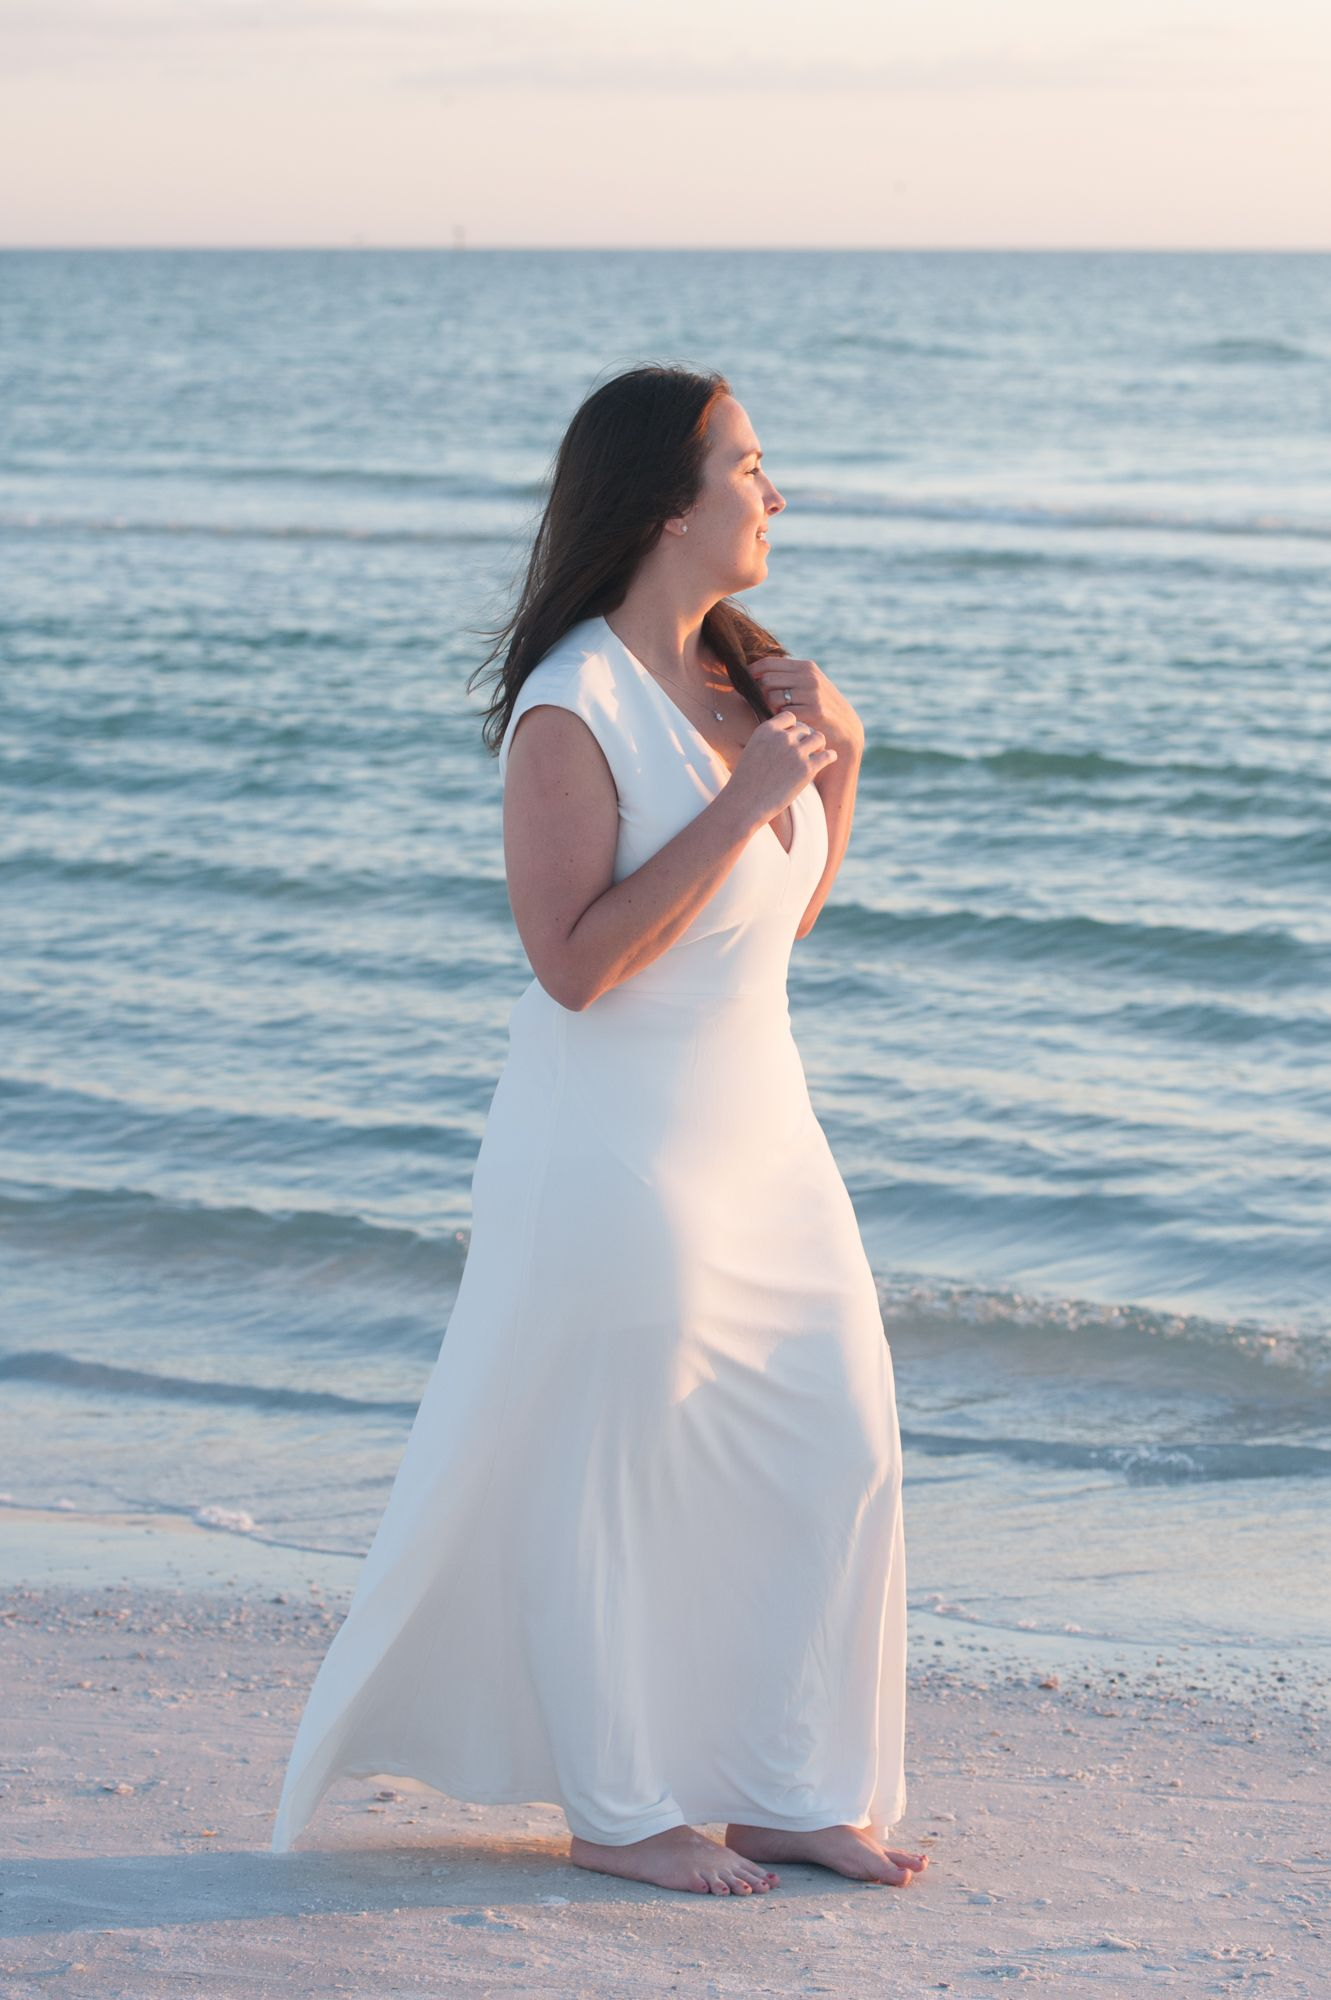 A Cream Colored Beach Wedding Dress That Is Light And Airy In The Florida Breeze